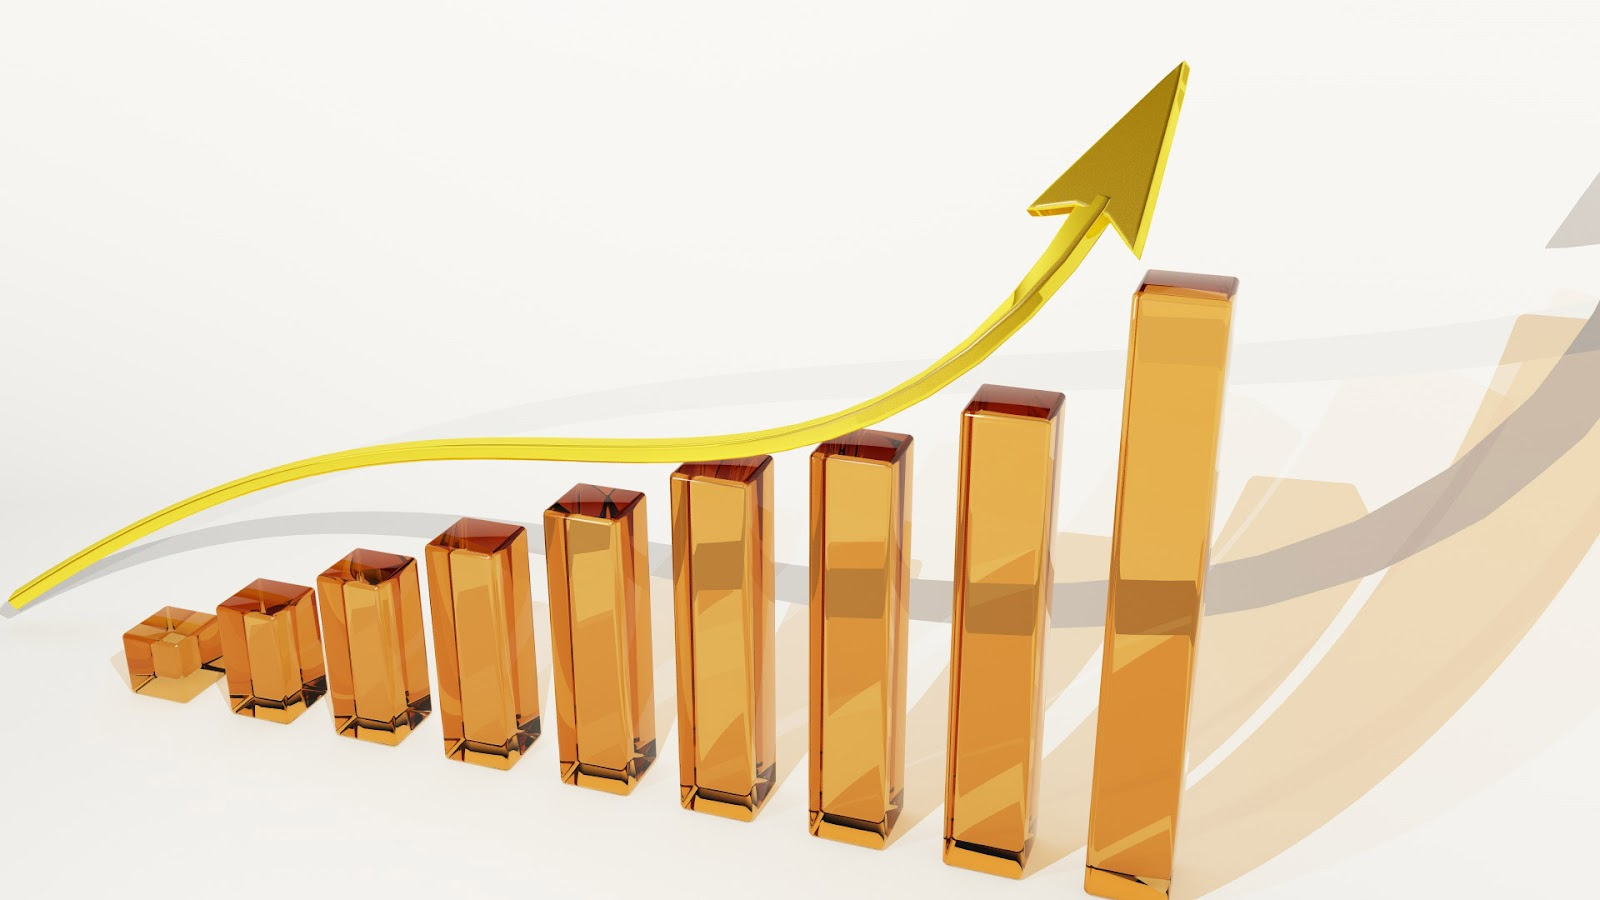 Graph,growth,finance,profits,dividends - free image from needpix.com